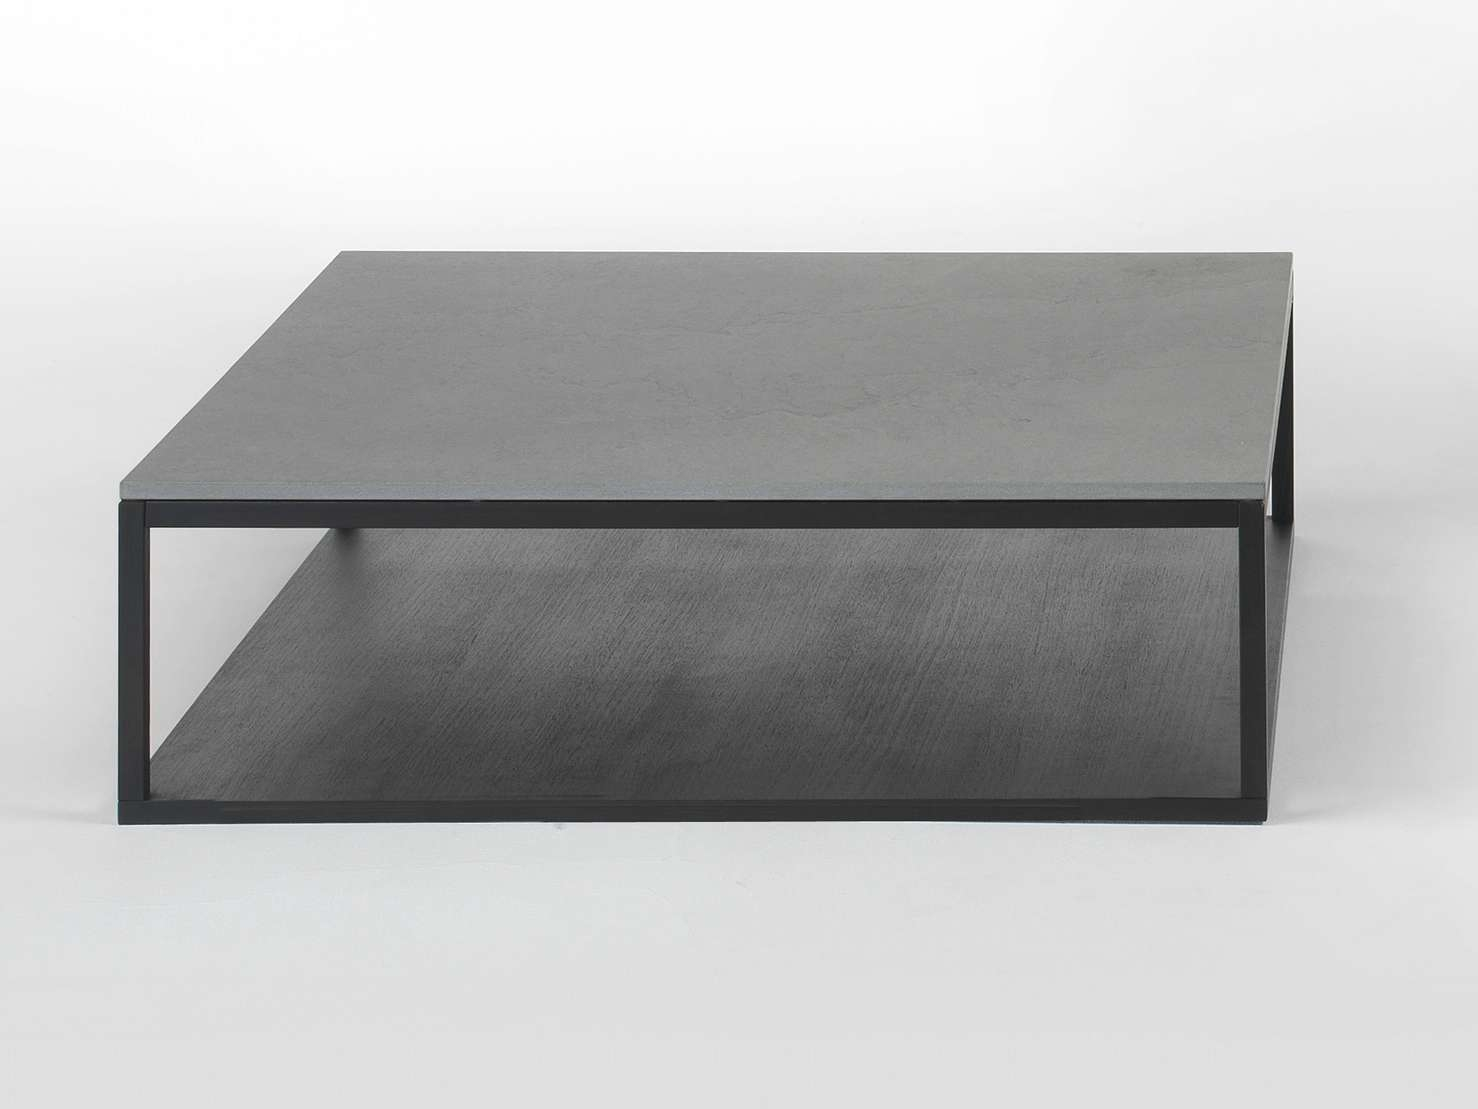 Aleksil Throughout Widely Used Low Level Coffee Tables (Gallery 5 of 20)